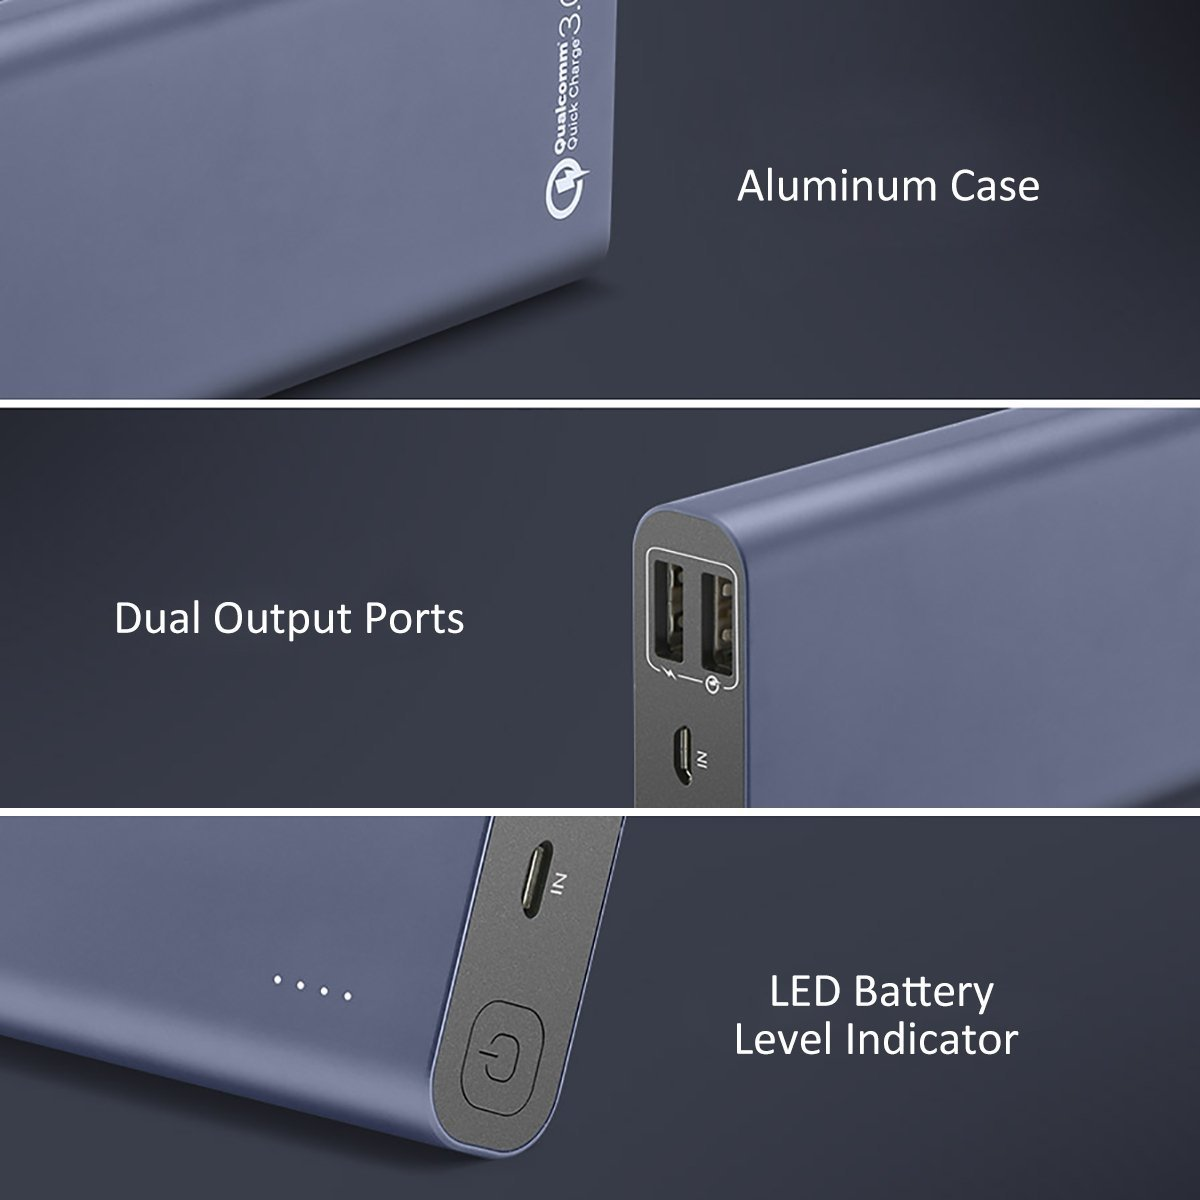 Power Bank 15600mAh Dual USB - BlitzWolf Qualcomm Quick Charge 3.0 Portable Charger with Micro USB Cable, Compact External Battery Pack with Power 3S Tech for iPhone Samsung Android Phone Tablets